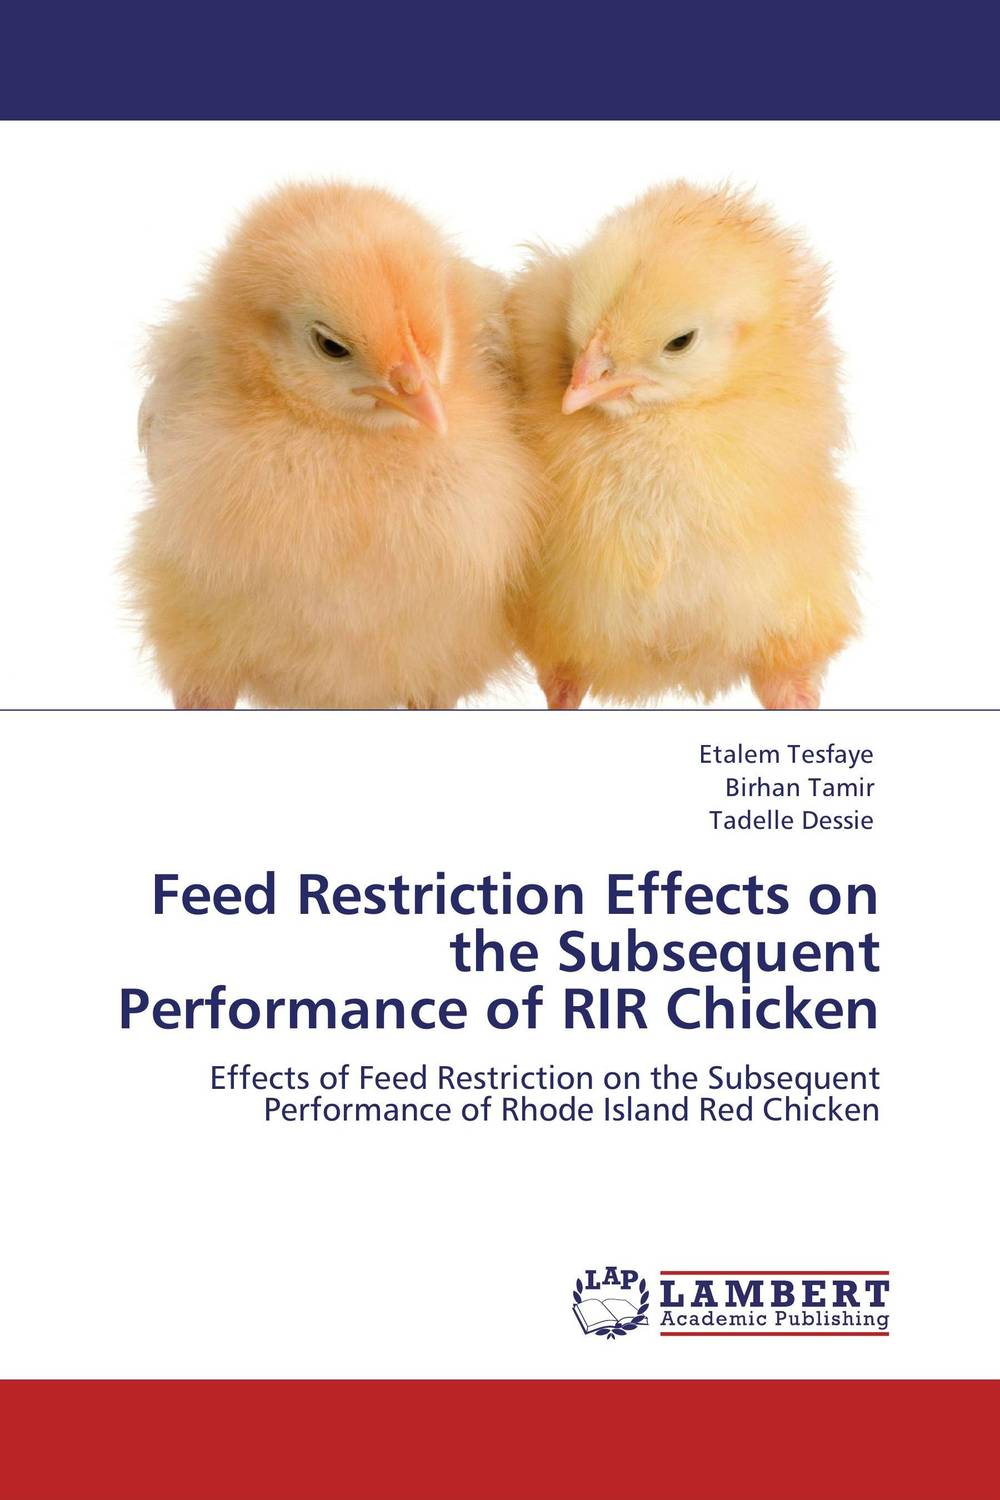 Feed Restriction Effects on the Subsequent Performance of RIR Chicken the first feed study